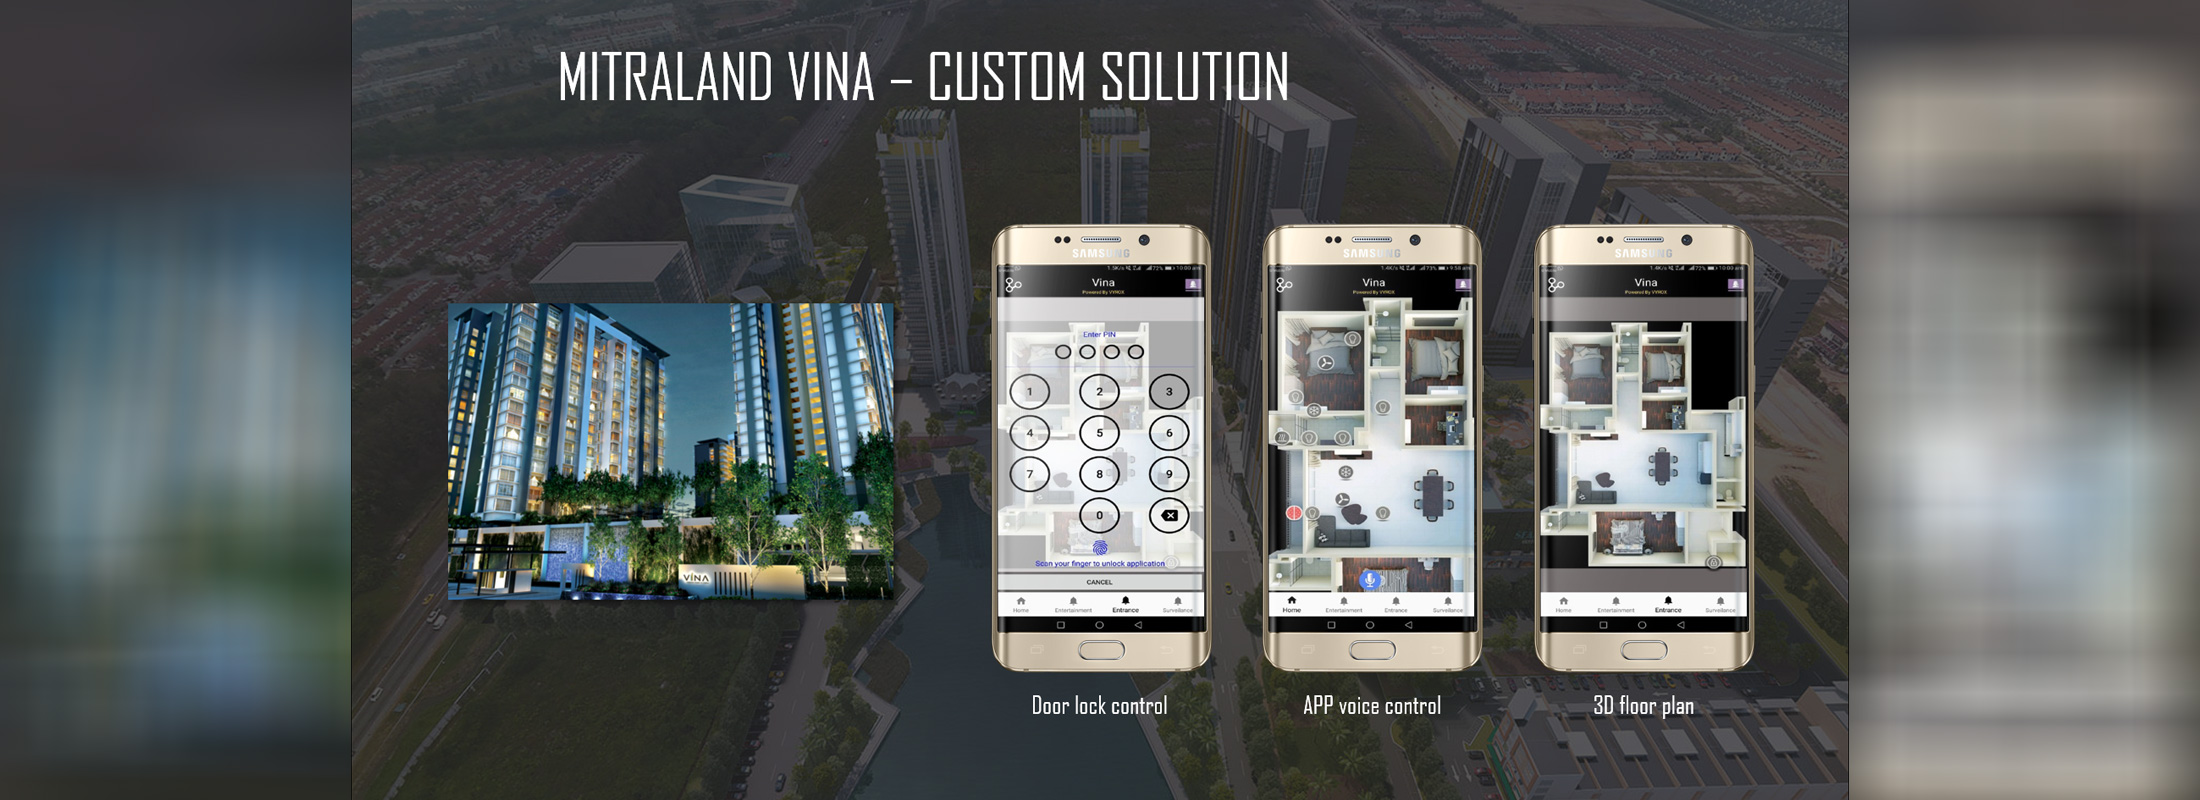 Mitraland Vina - custom smarthome solution, door lock control, app voice control, 3D floor plan